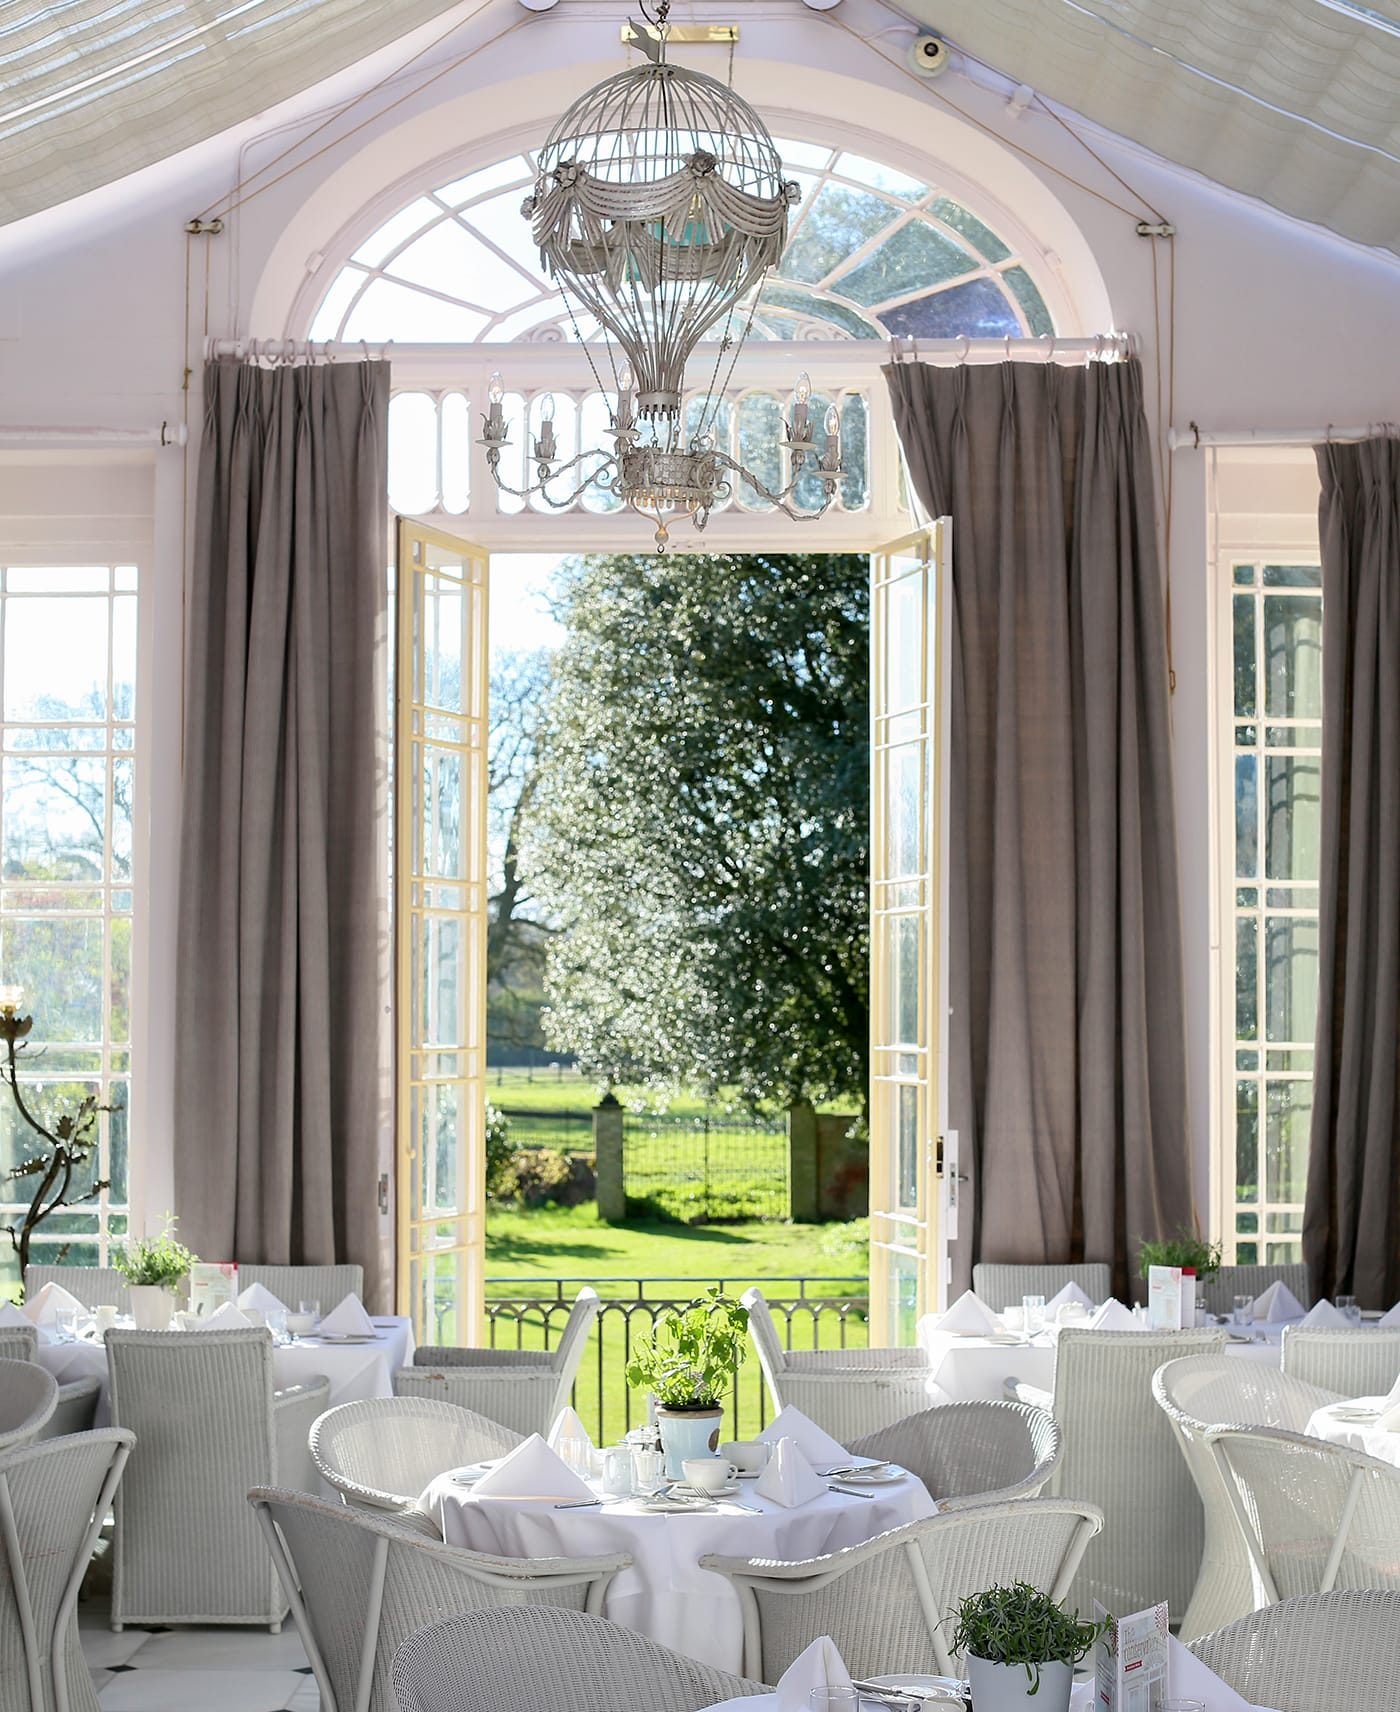 Restaurant at The Ickworth in Suffolk